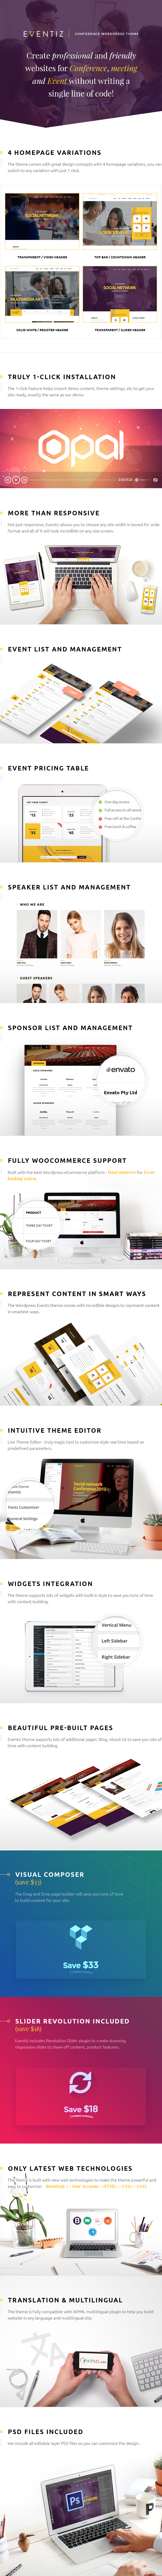 responsive wordpress theme for conference and event